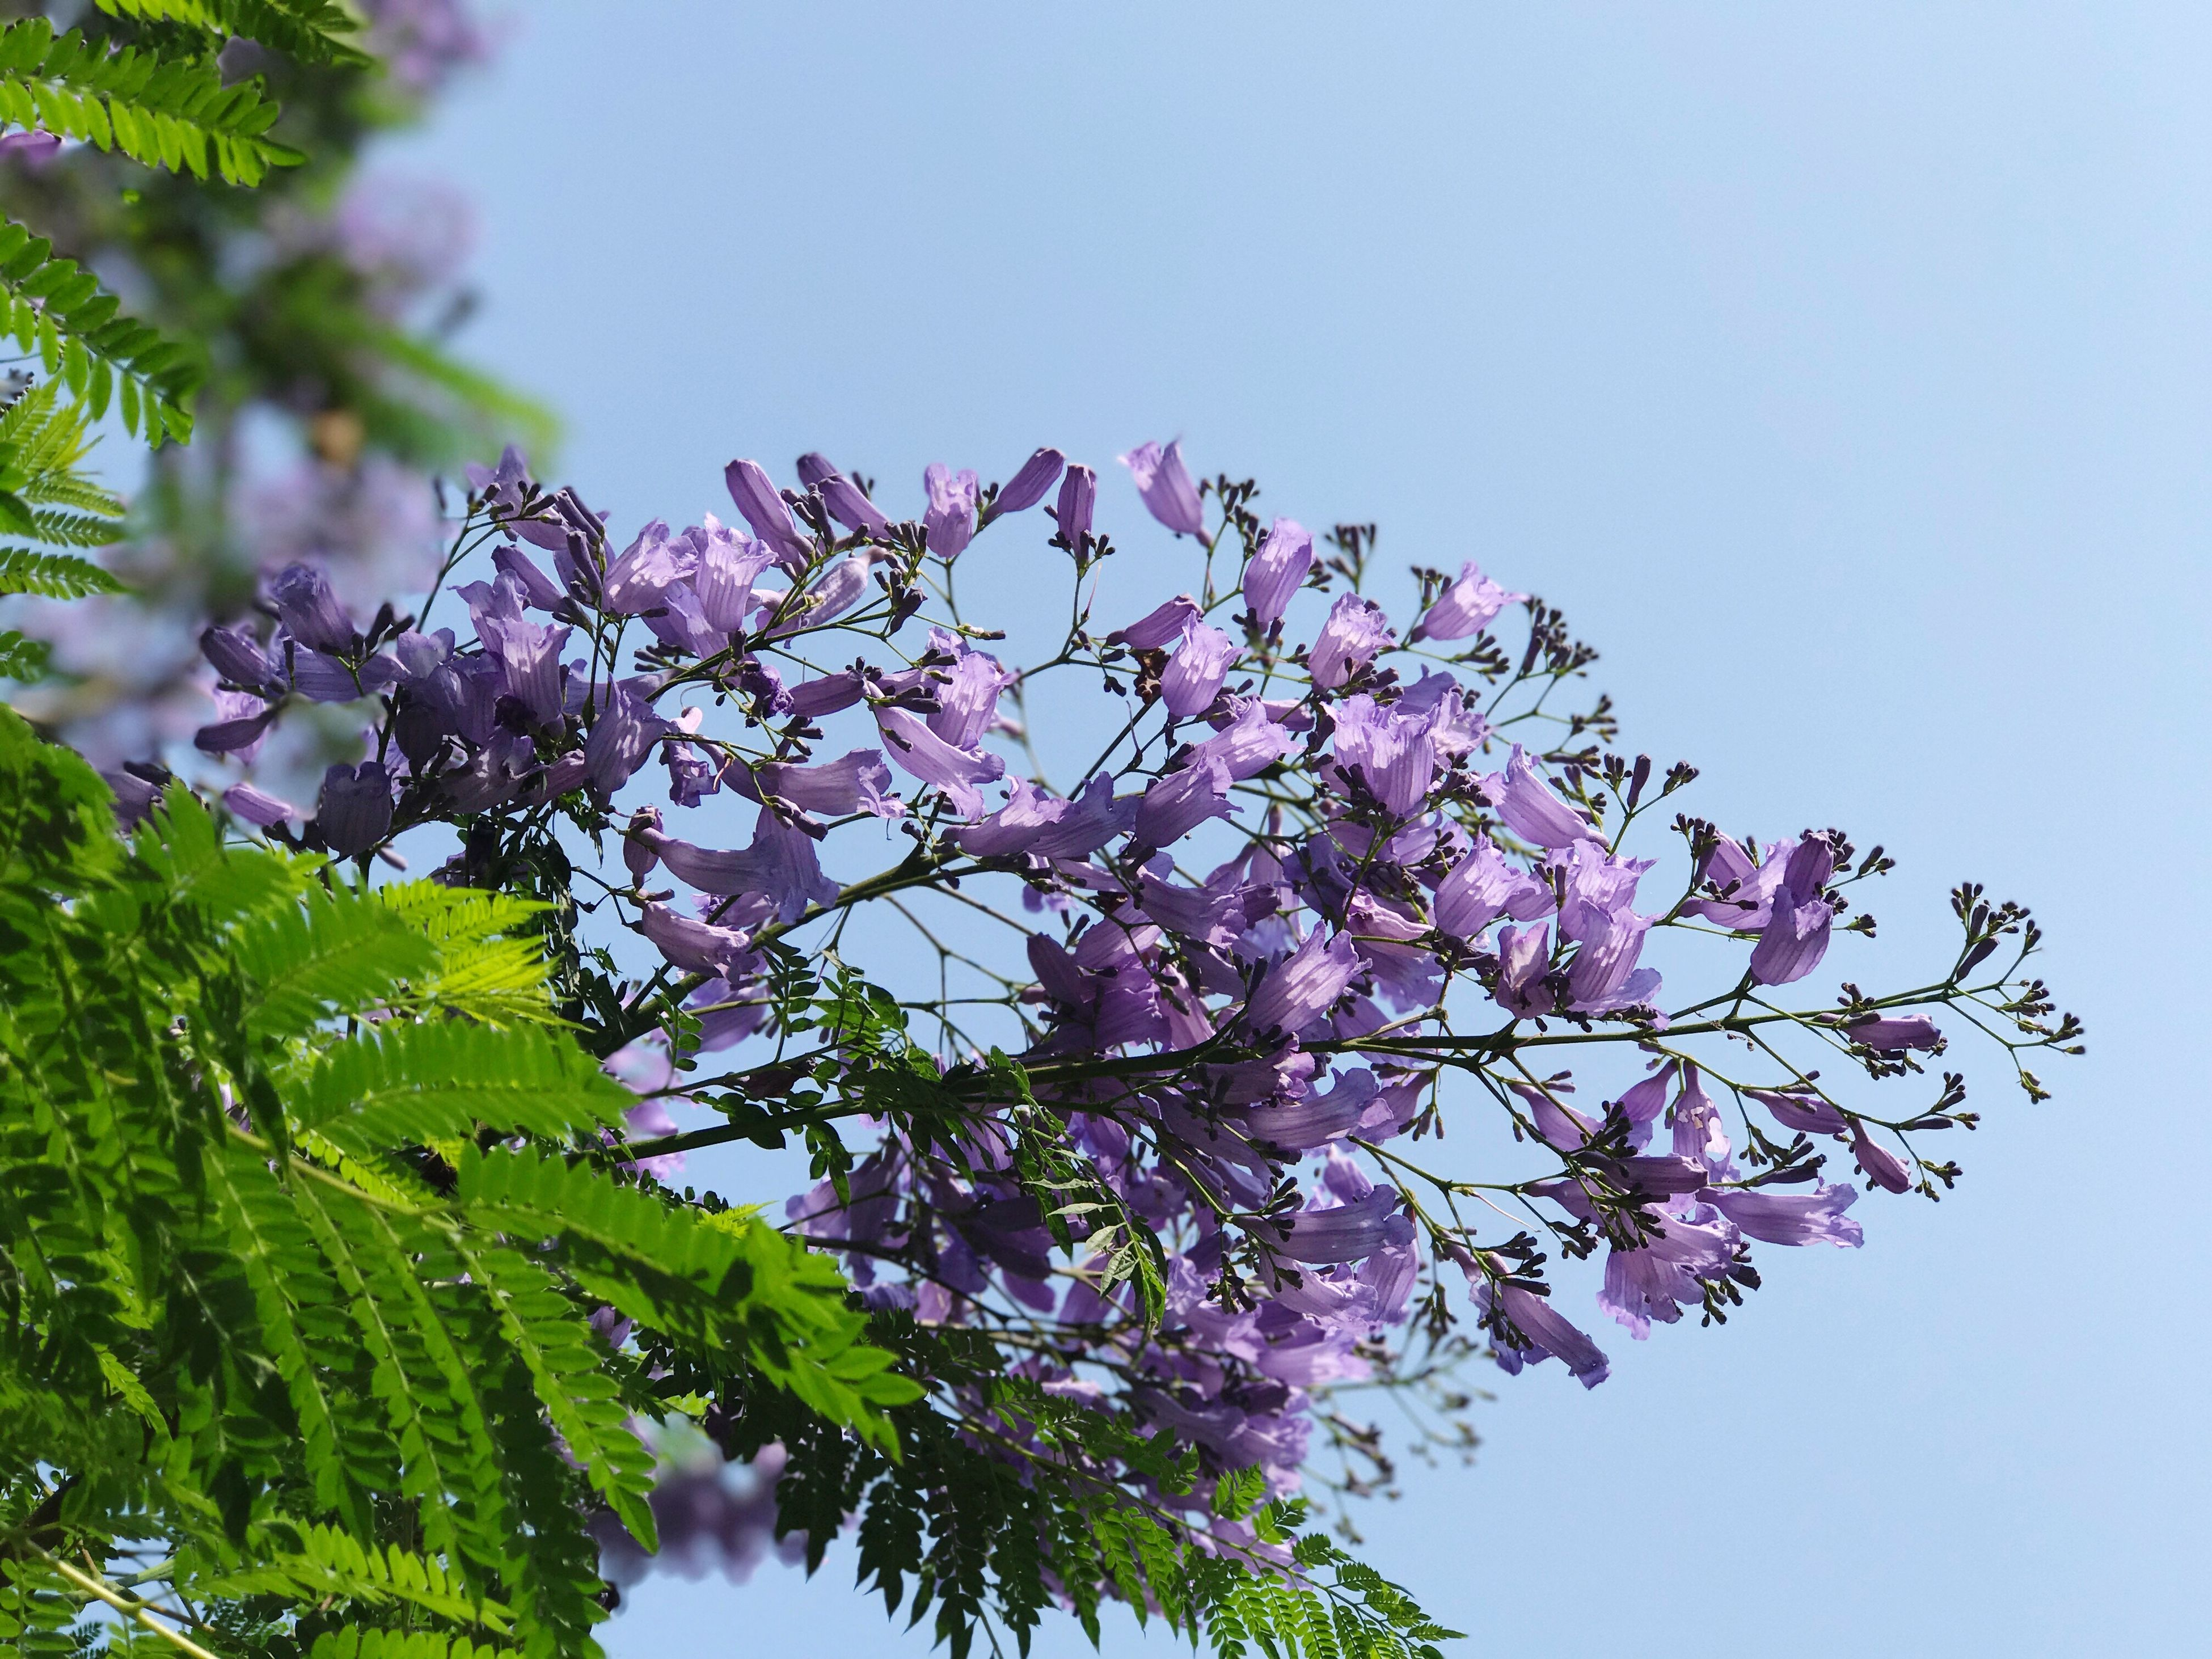 nature, beauty in nature, flower, growth, low angle view, fragility, freshness, tree, no people, clear sky, pink color, day, outdoors, branch, plant, lilac, sky, blooming, close-up